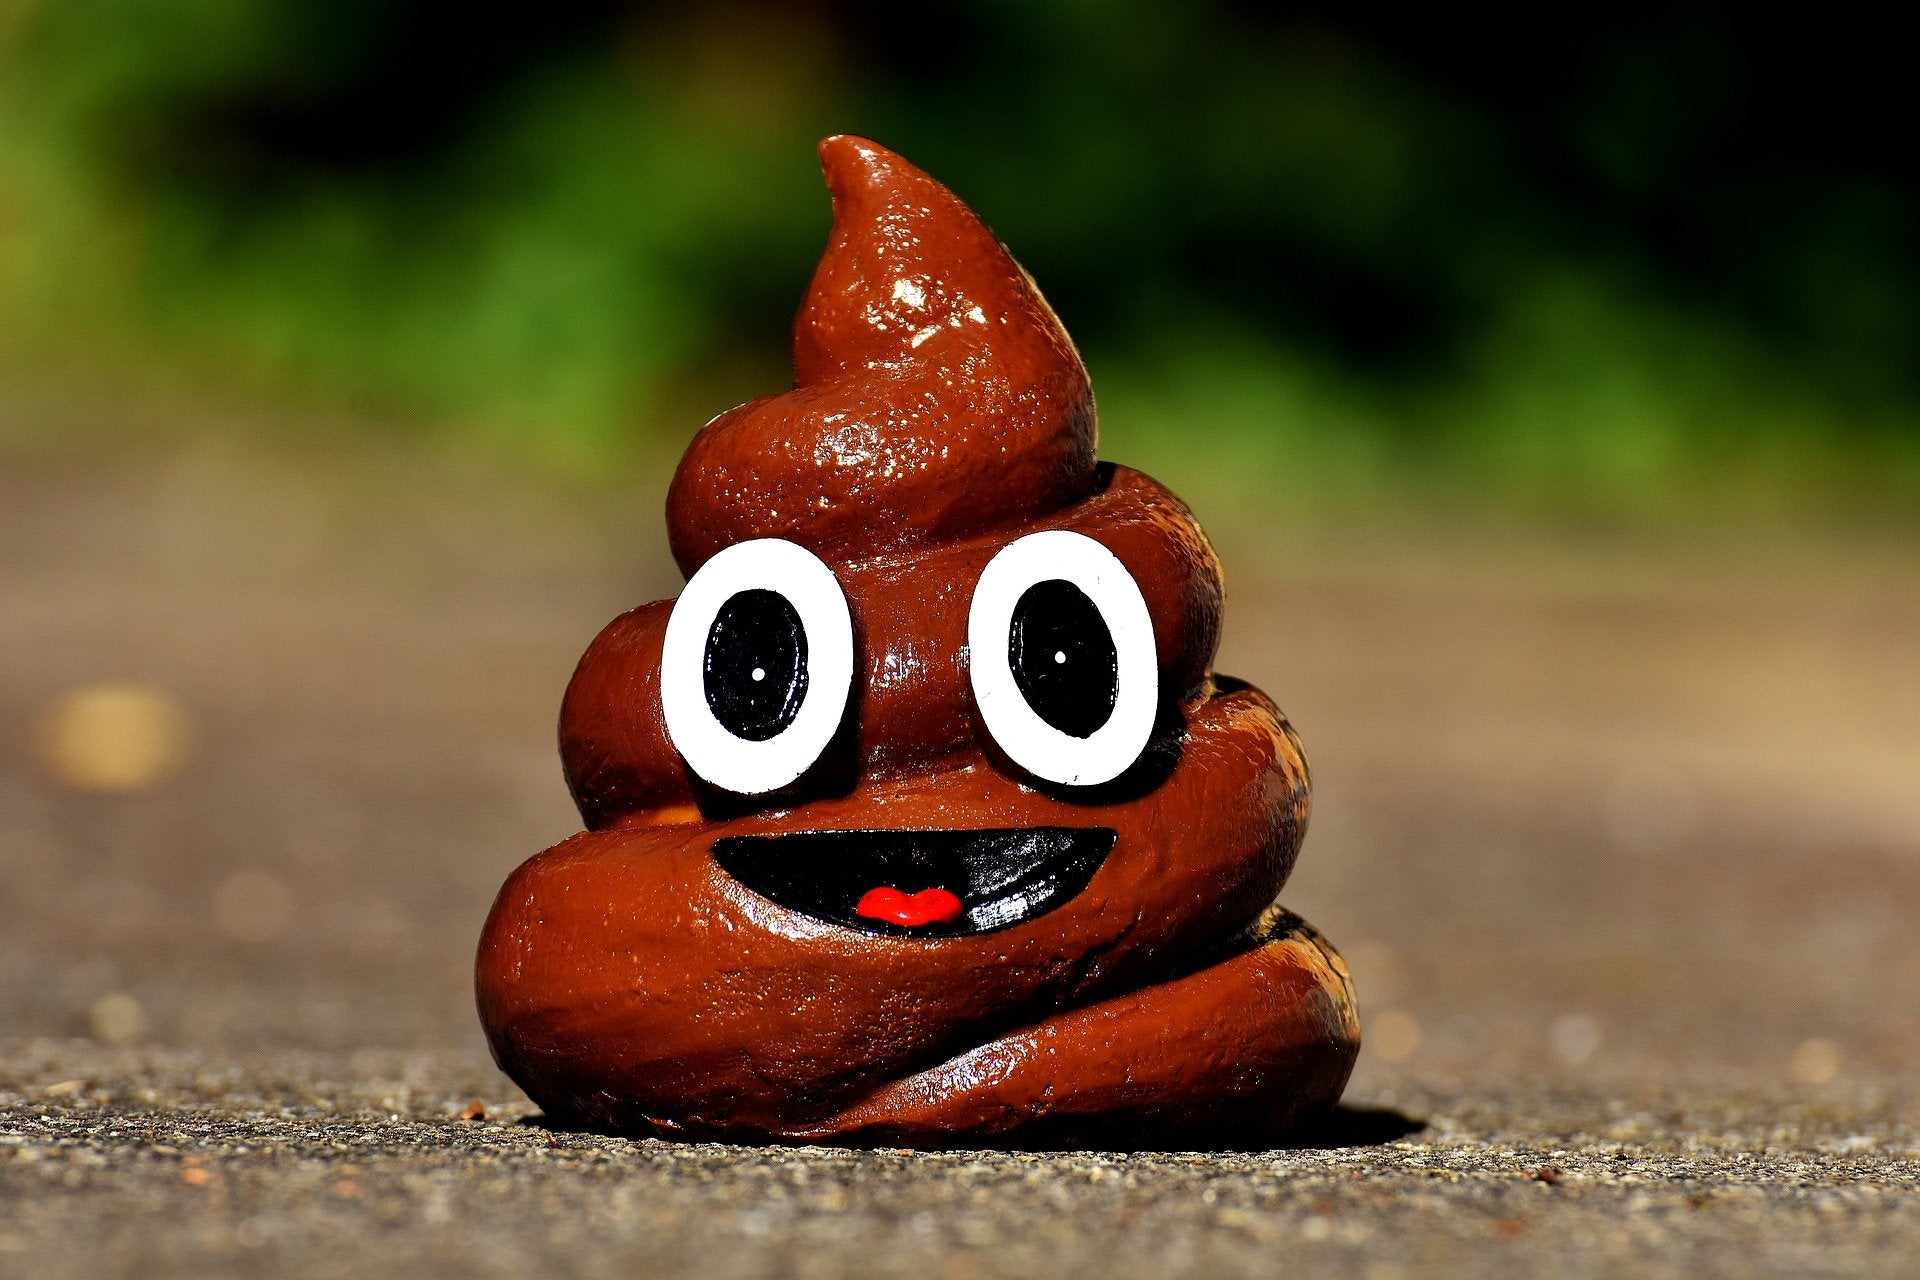 Poo emoji model on a road